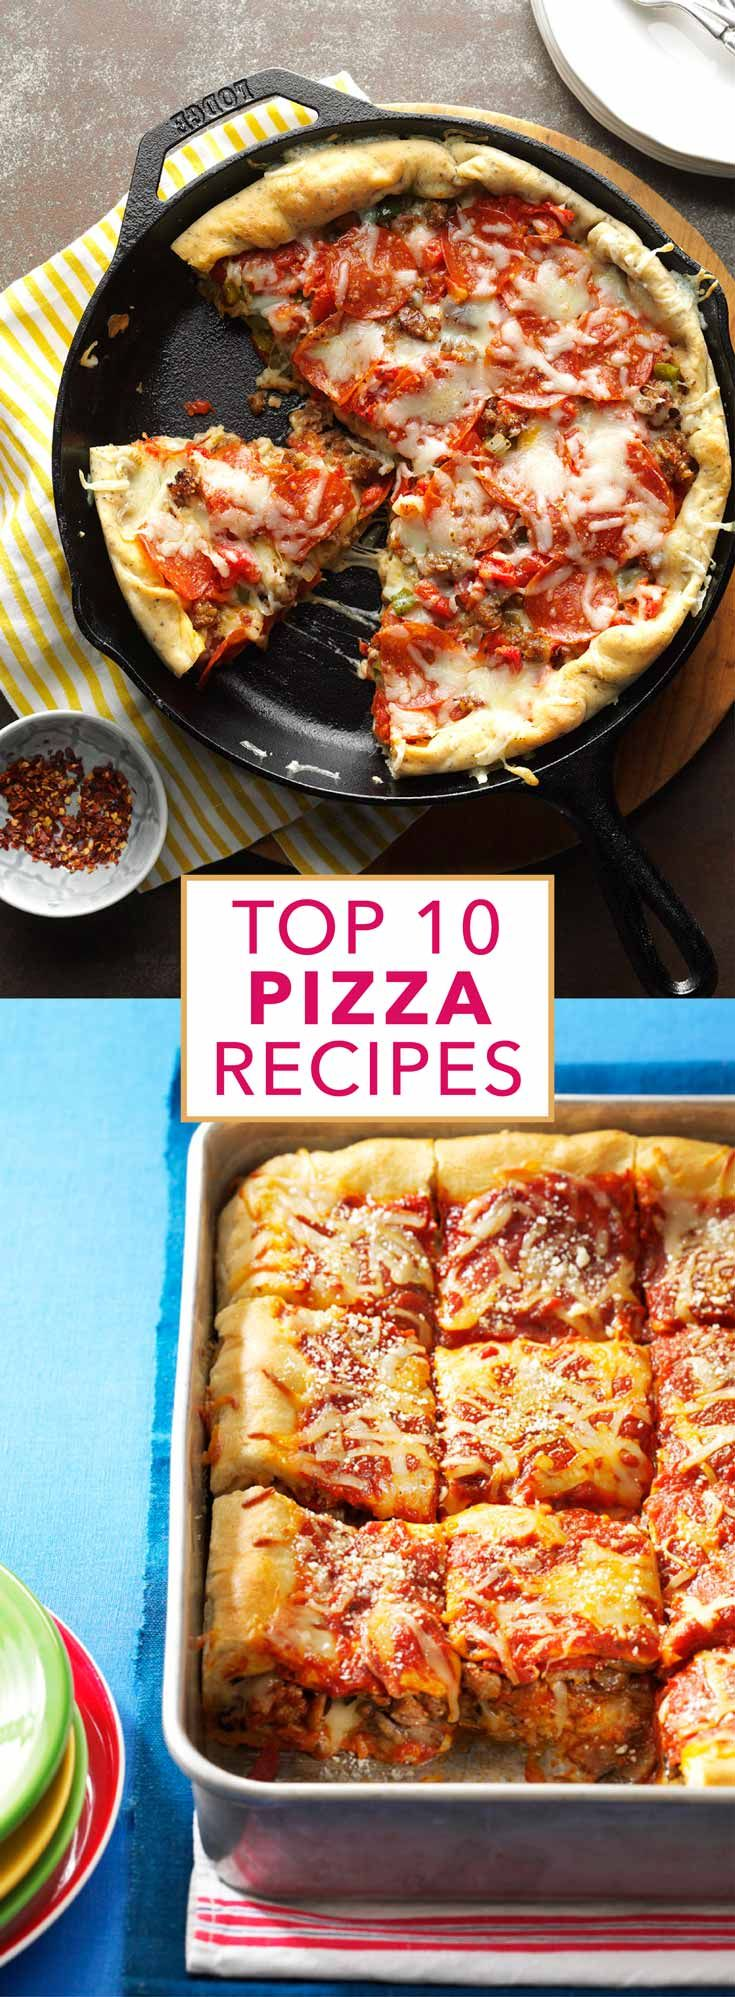 Top 10 Pizza Recipes from Taste of Home